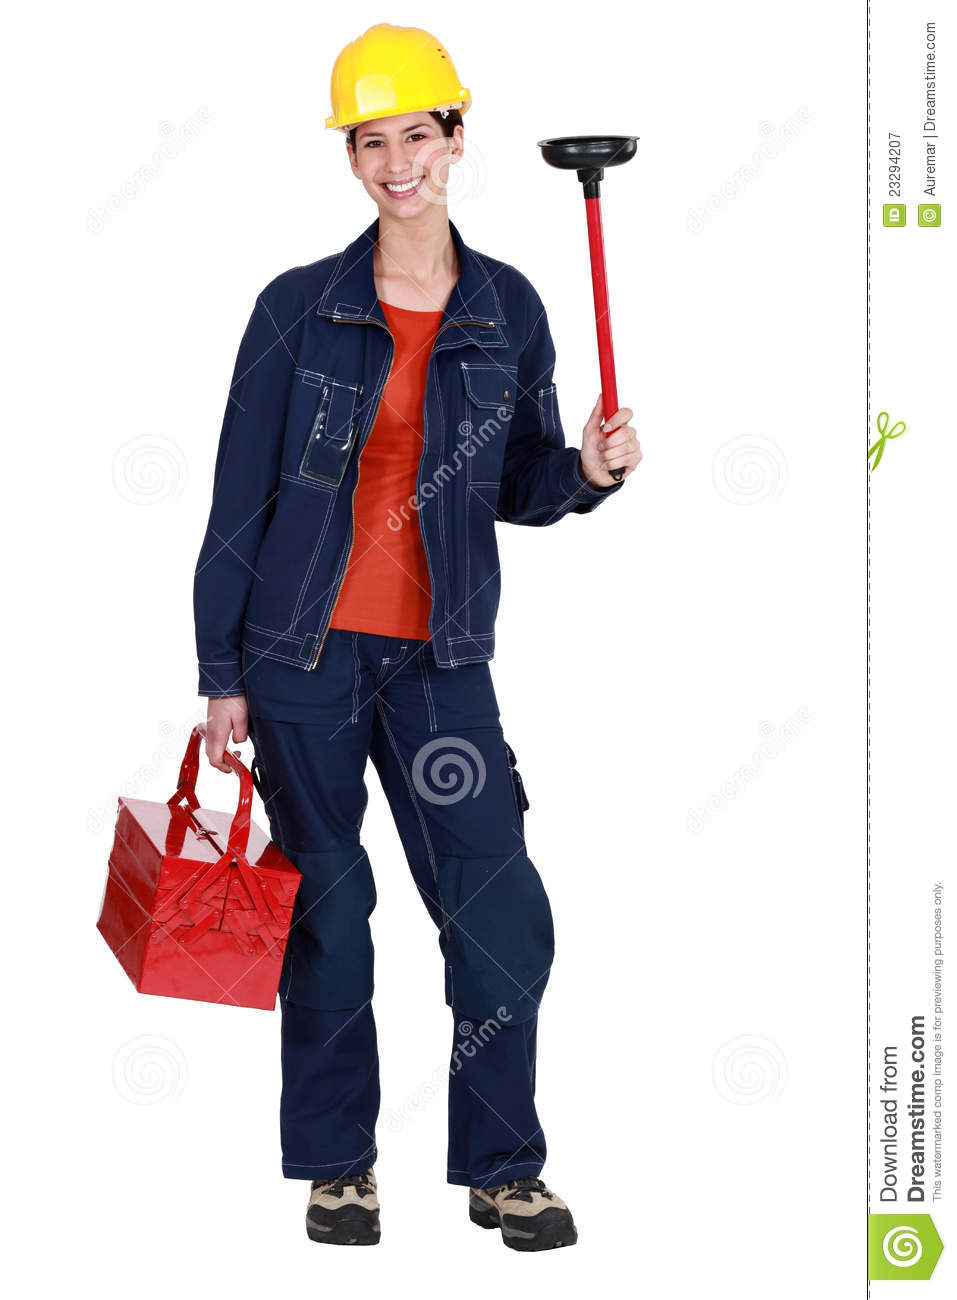 Woman holding plunger